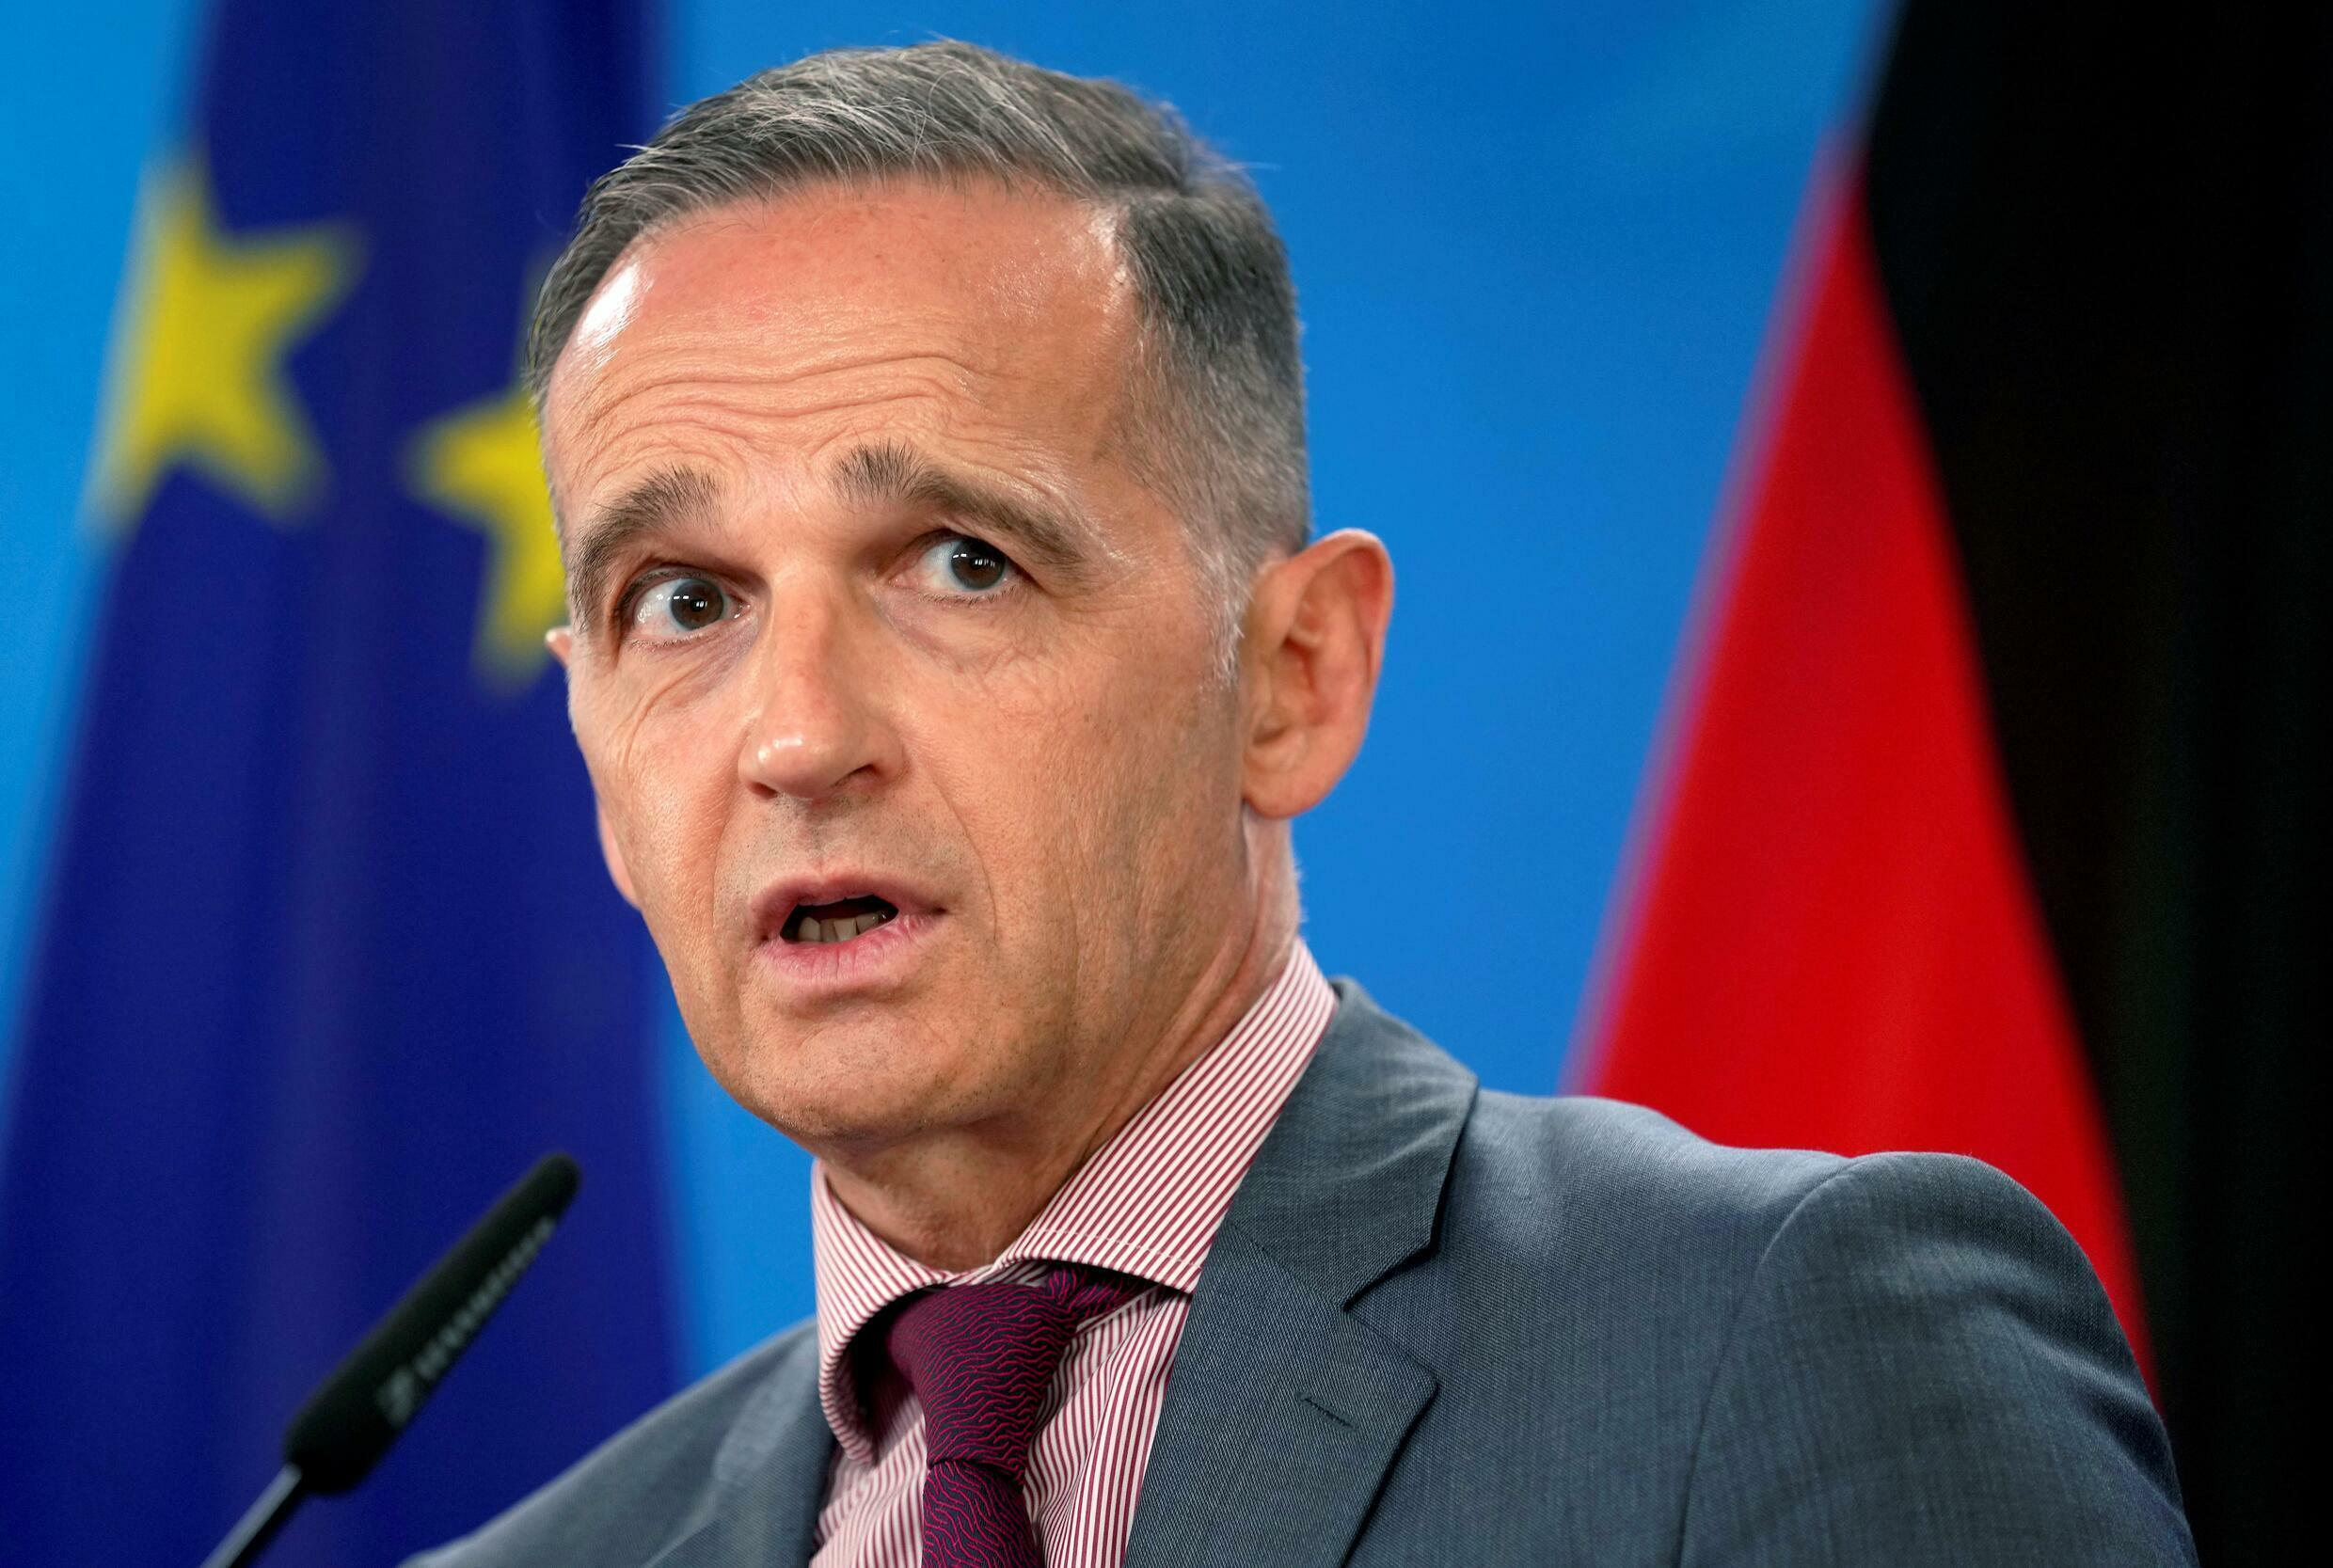 German Foreign Minister Heiko Maas said the choice of an alliance partner as a spy is 'absolutely unacceptable.'